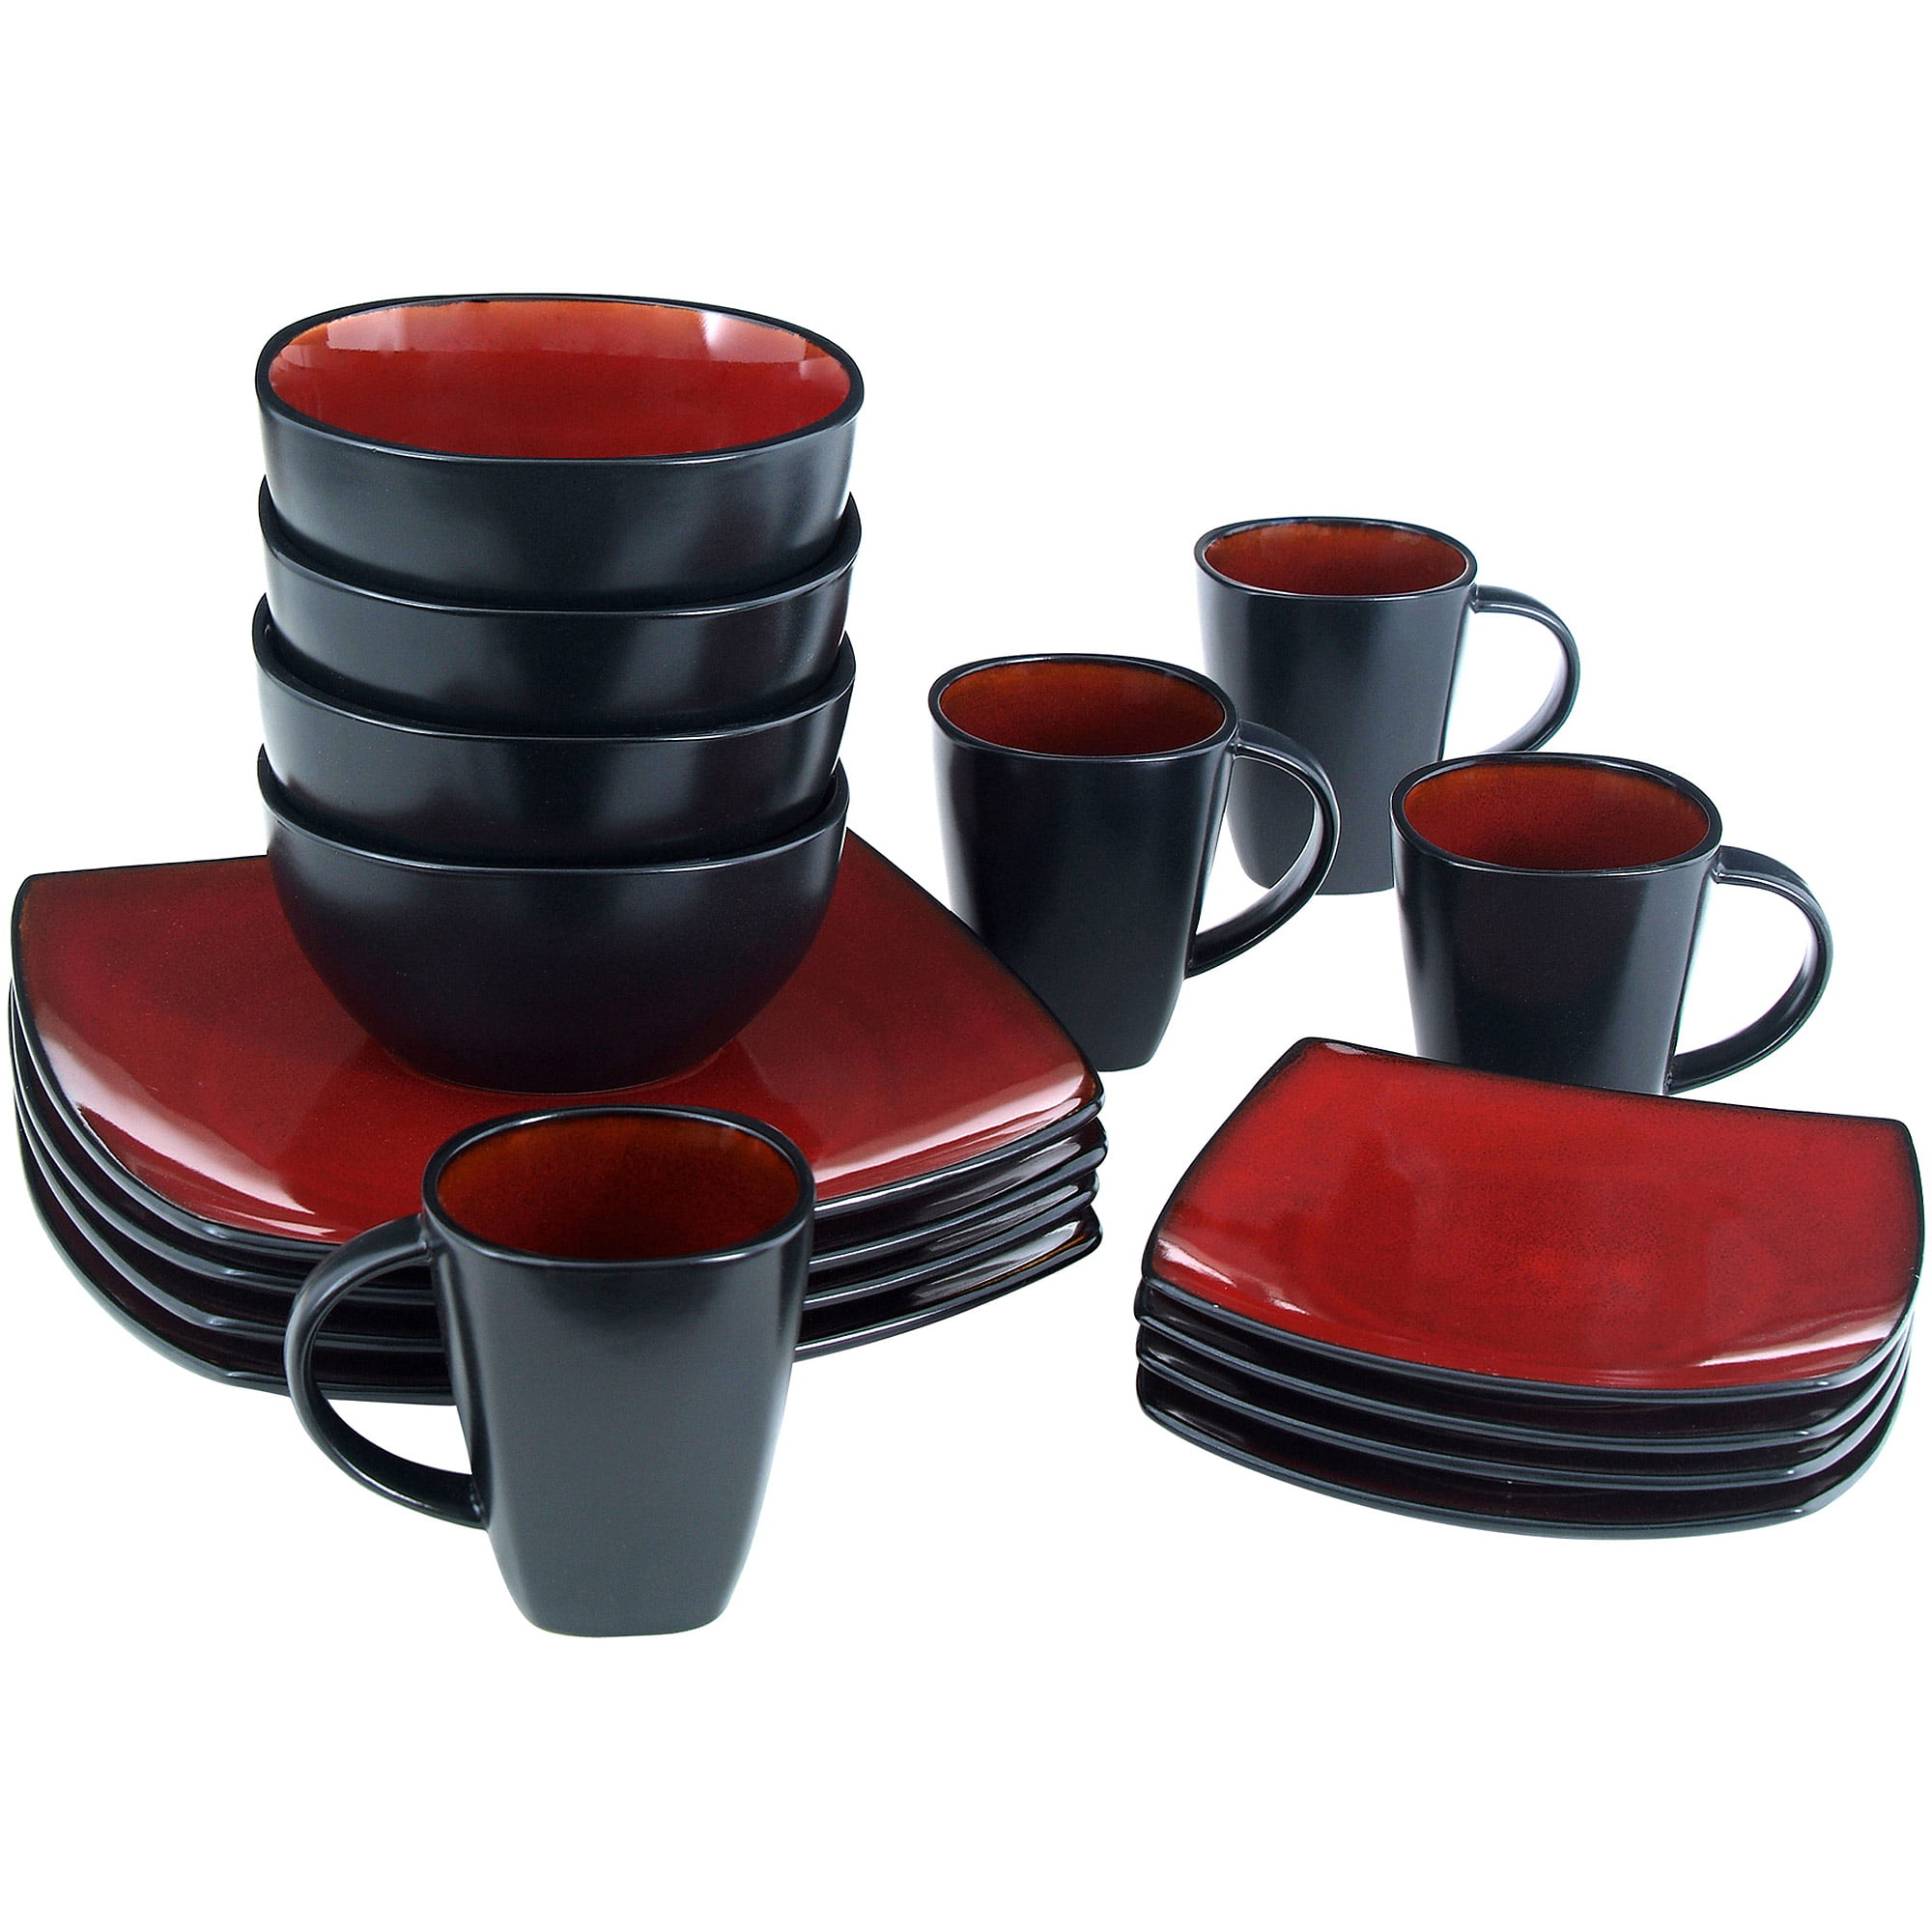 sc 1 st  Walmart : red tableware set - pezcame.com